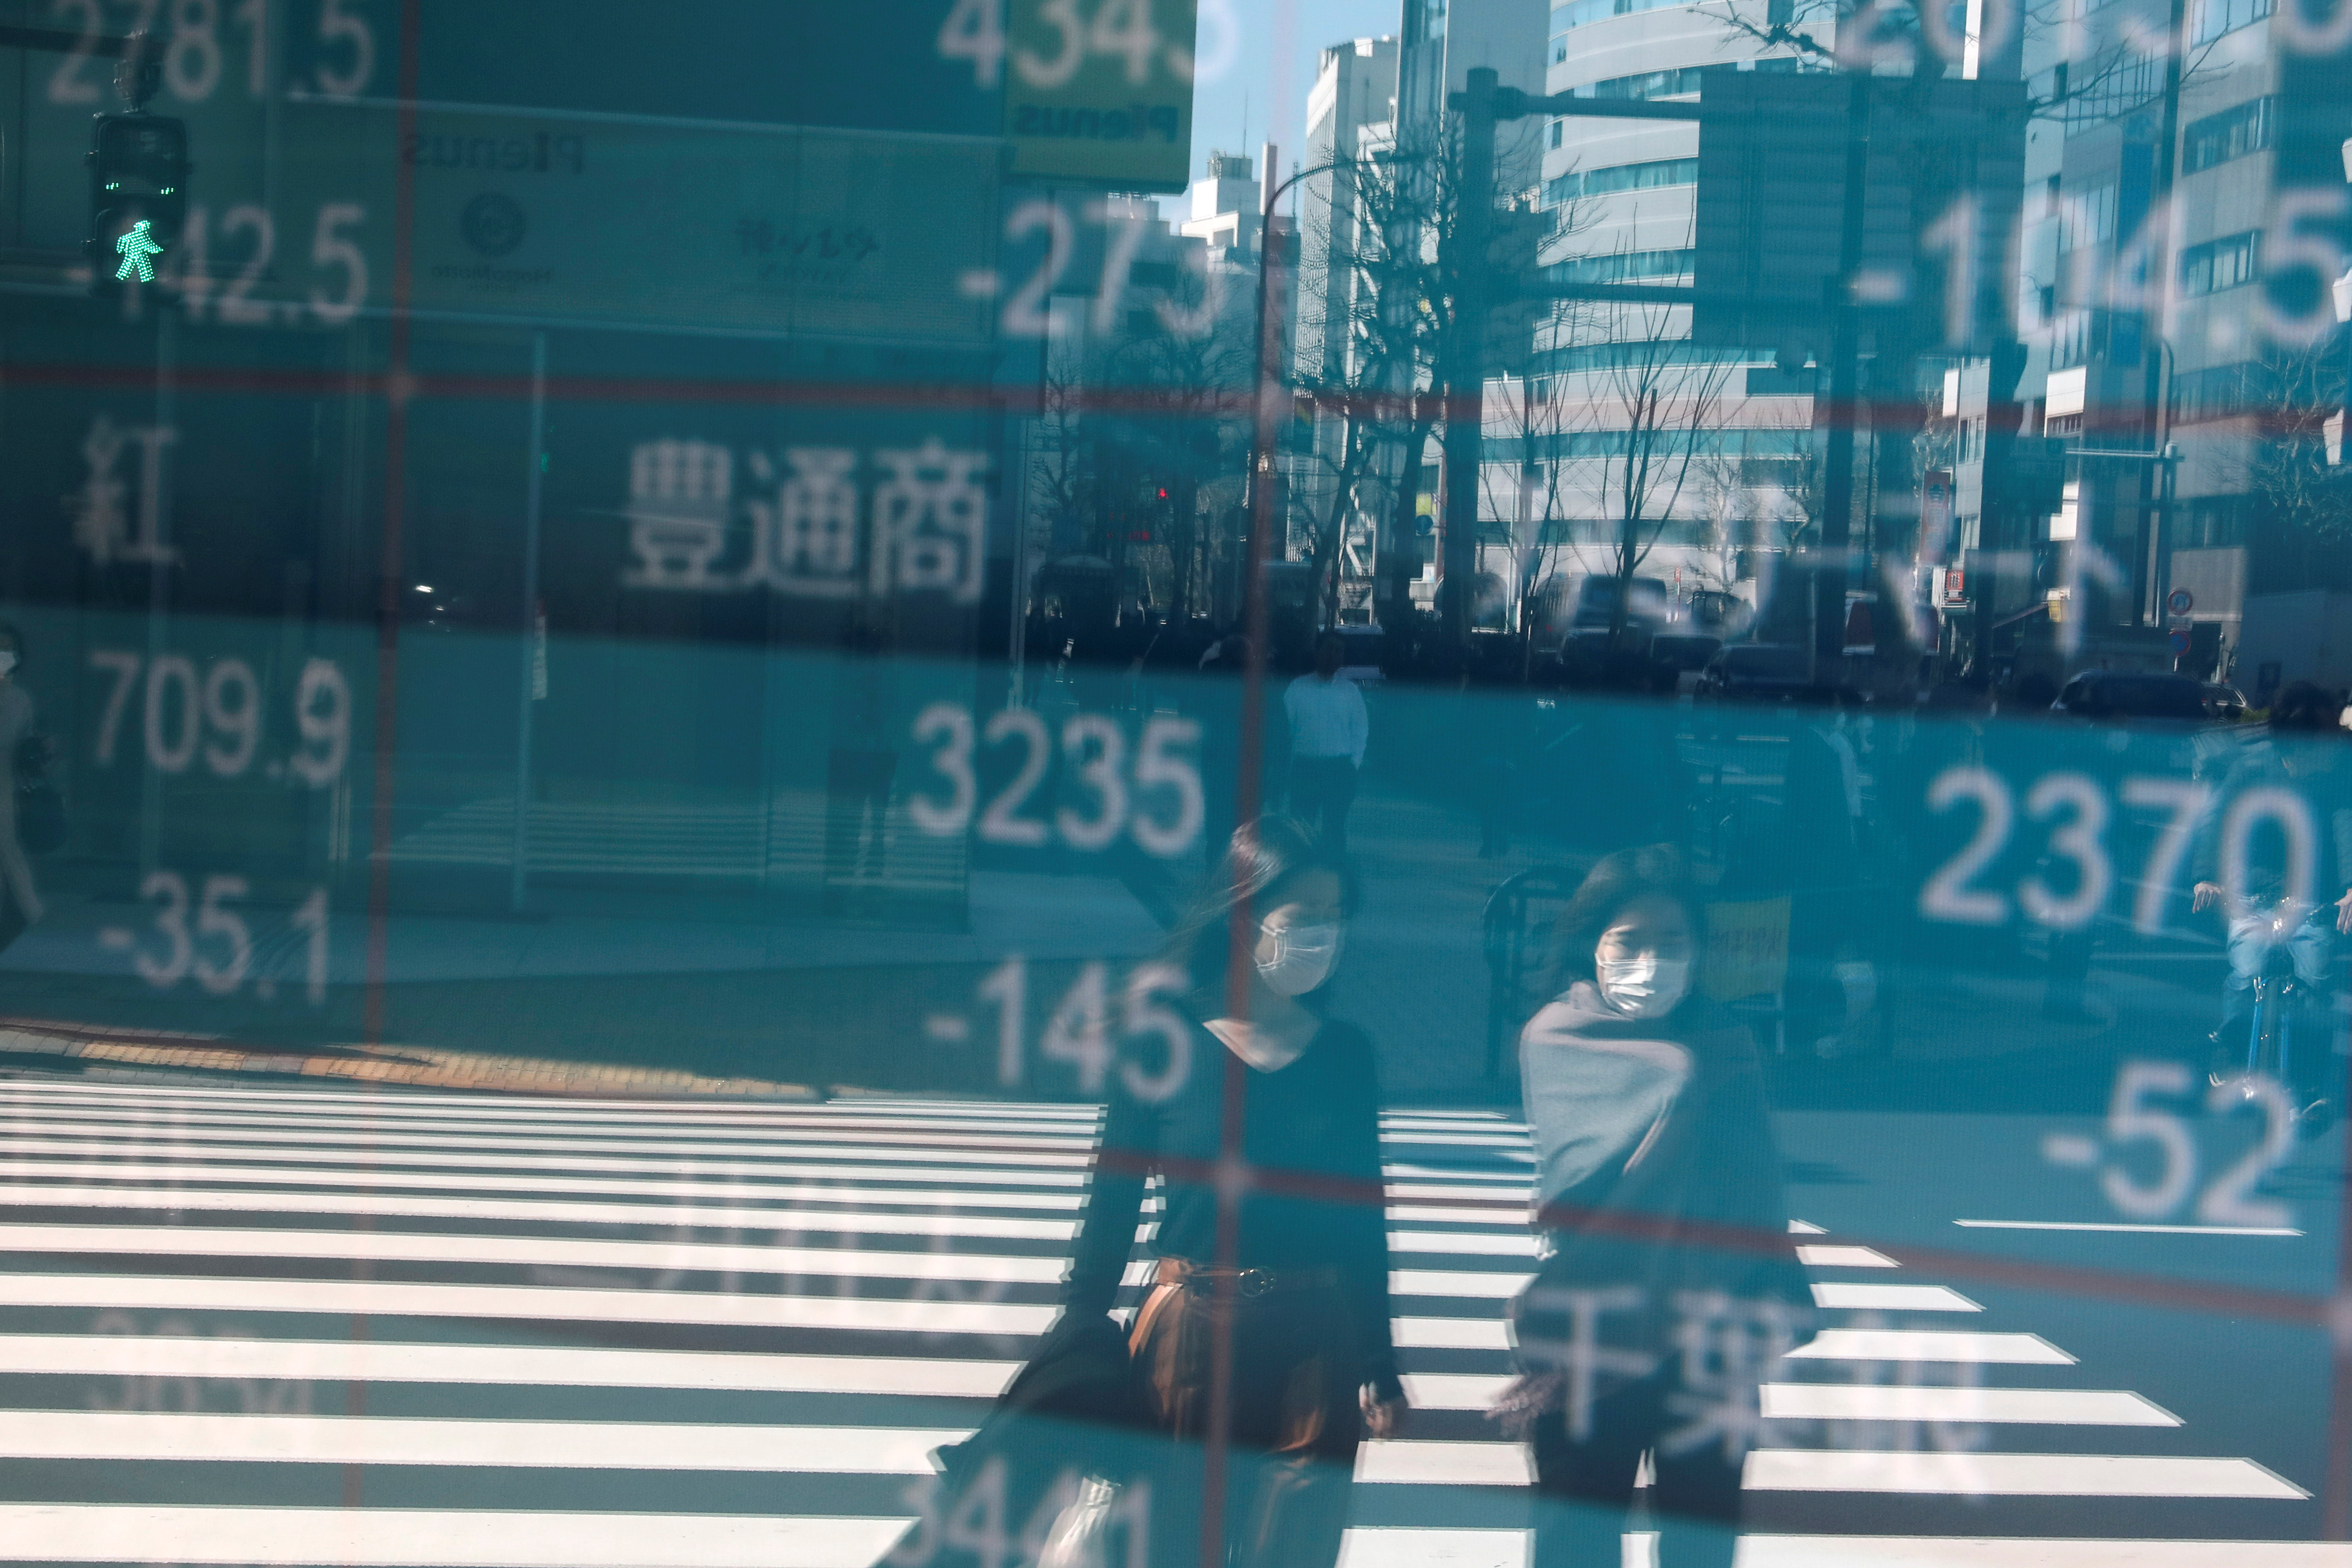 People wearing protective face masks, following an outbreak of the coronavirus, are reflected on a screen showing Nikkei index, outside a brokerage in Tokyo, Japan February 28, 2020. REUTERS/Athit Perawongmetha